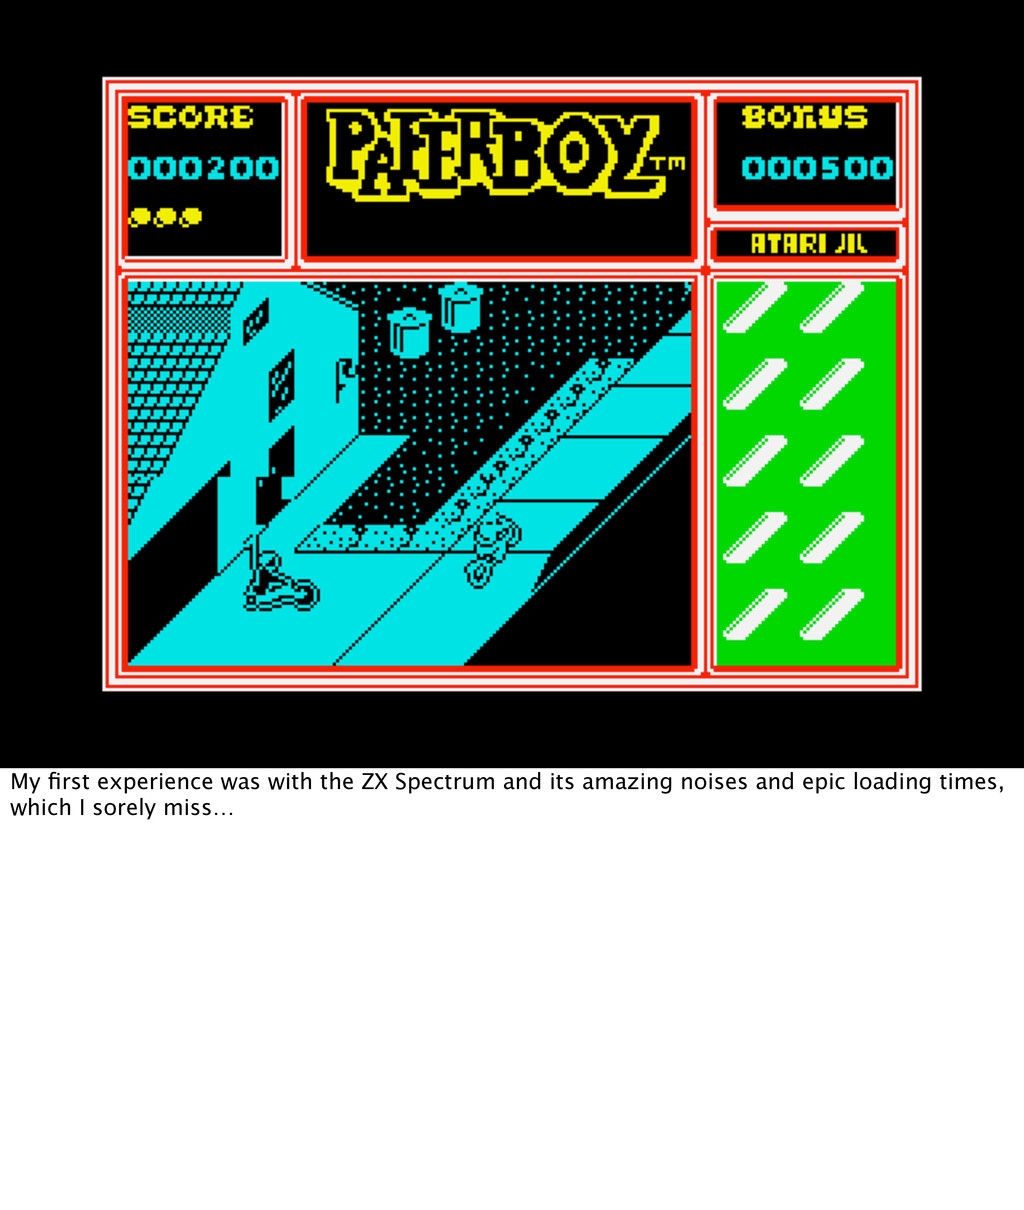 My first experience was with the ZX Spectrum and...